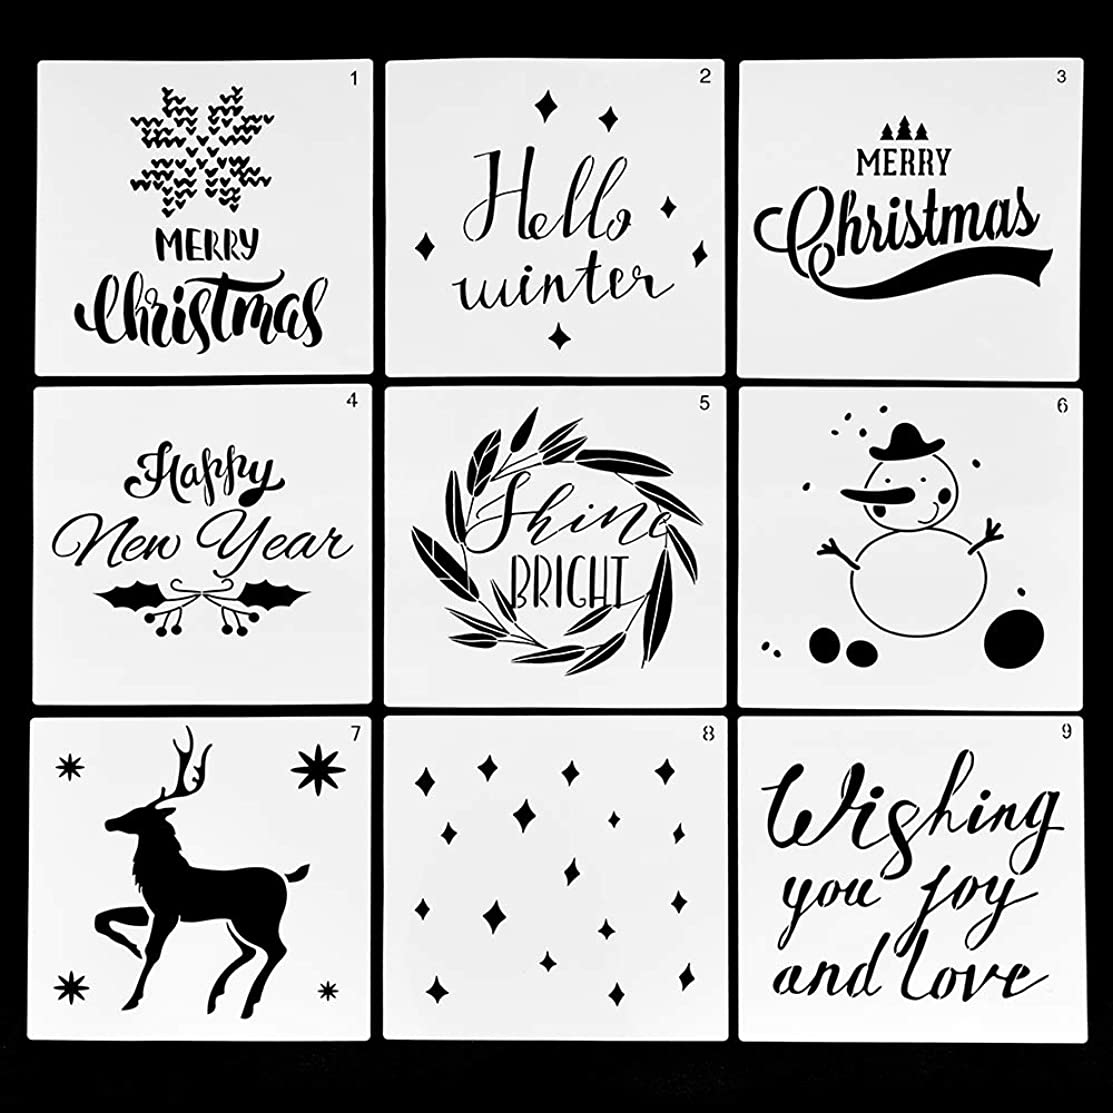 FY Christmas Stencils Merry Christmas,Christmas Tree,Snowflakes for Card DIY Drawing Painting Templates (2)